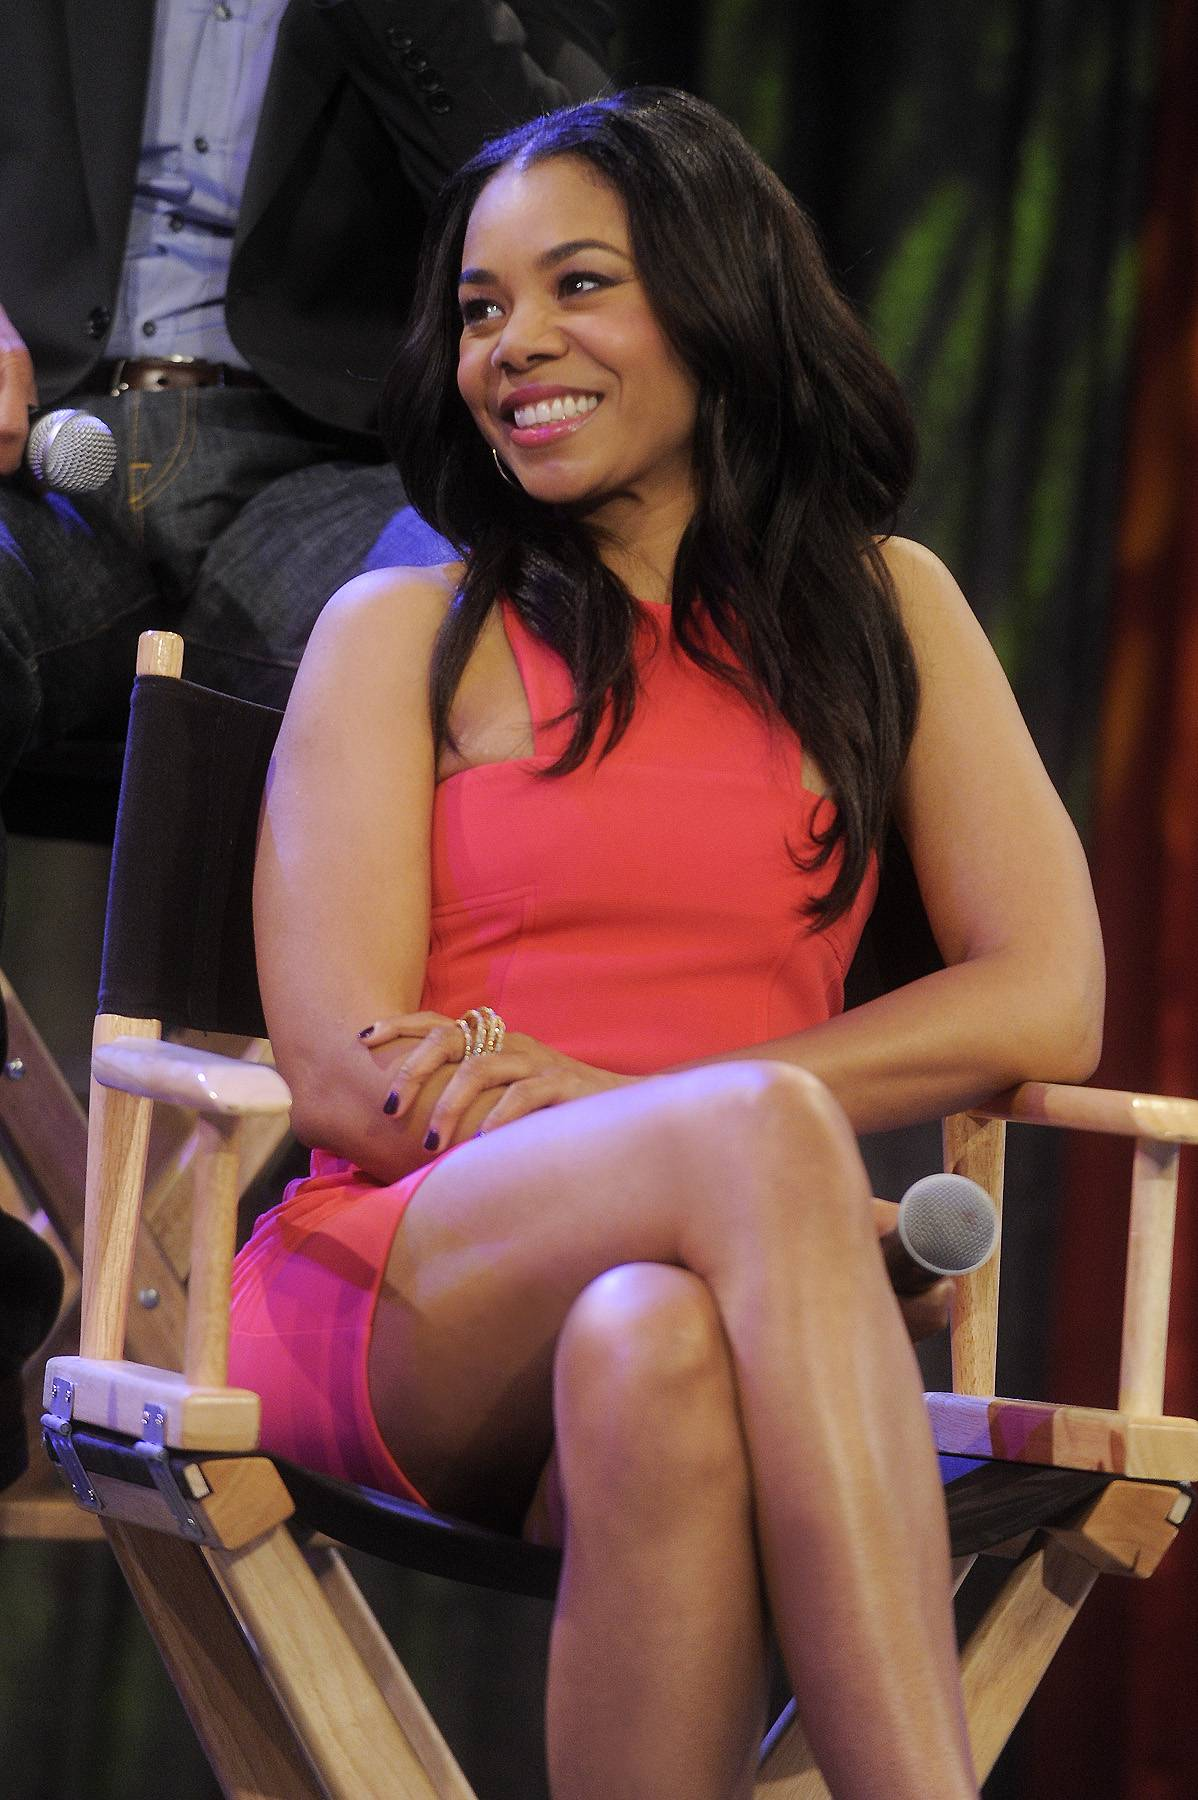 Second Generation Wayans - Today, Regina Hall plays a fictionalized version of herself on Second Generation Wayans as the love interest of her Malibu's Most Wanted co-star Damien Dante Wayans.(Photo: John Ricard / BET)